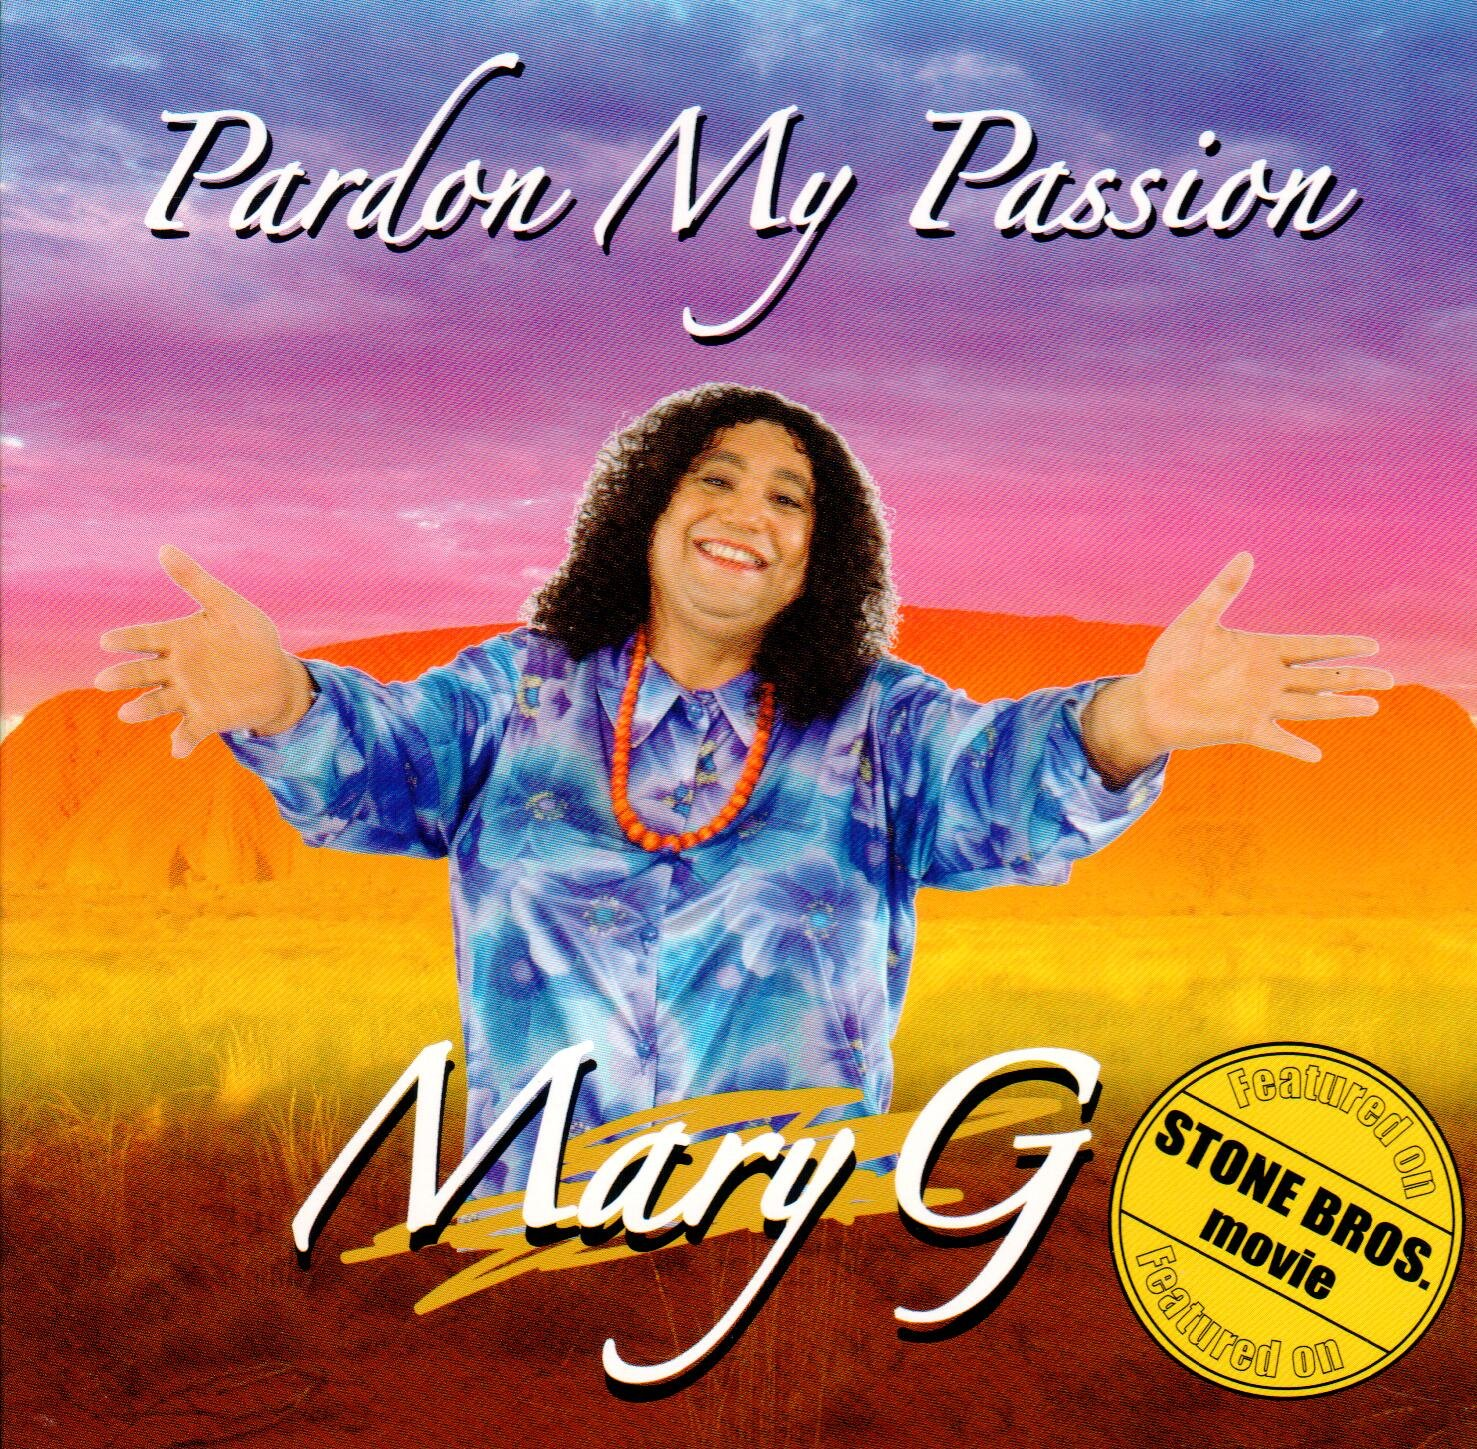 Pardon My Passion (Mary G) Front Cover